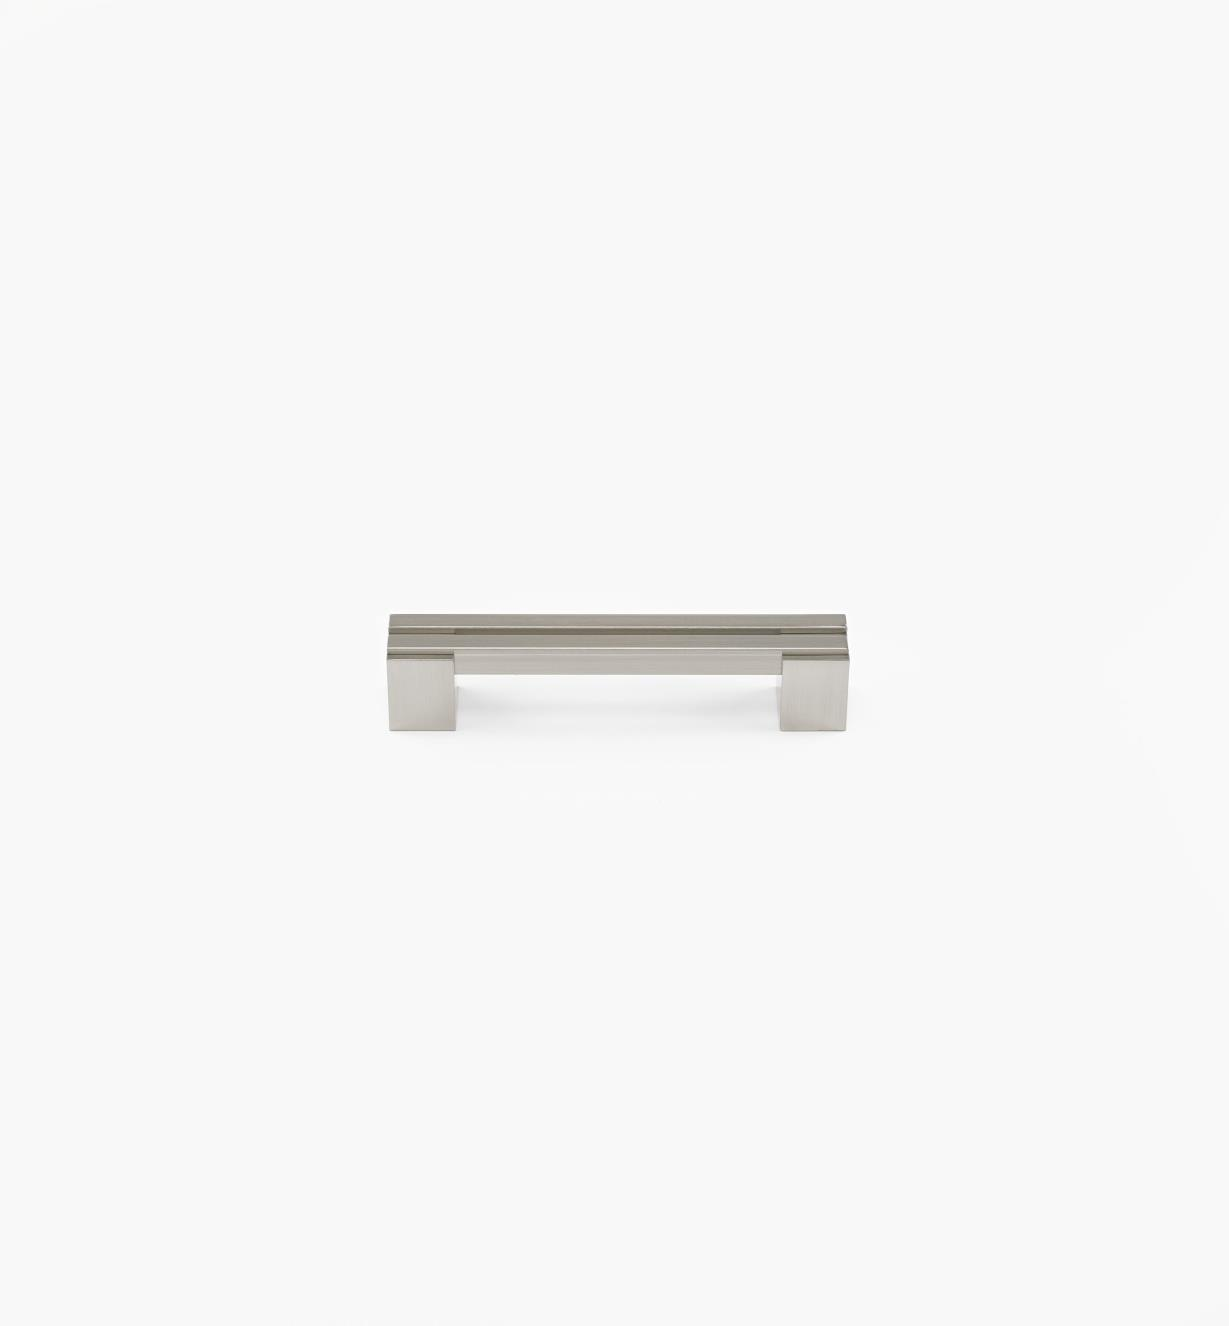 02W1350 - Parallel 128mm Satin Nickel Handle, each